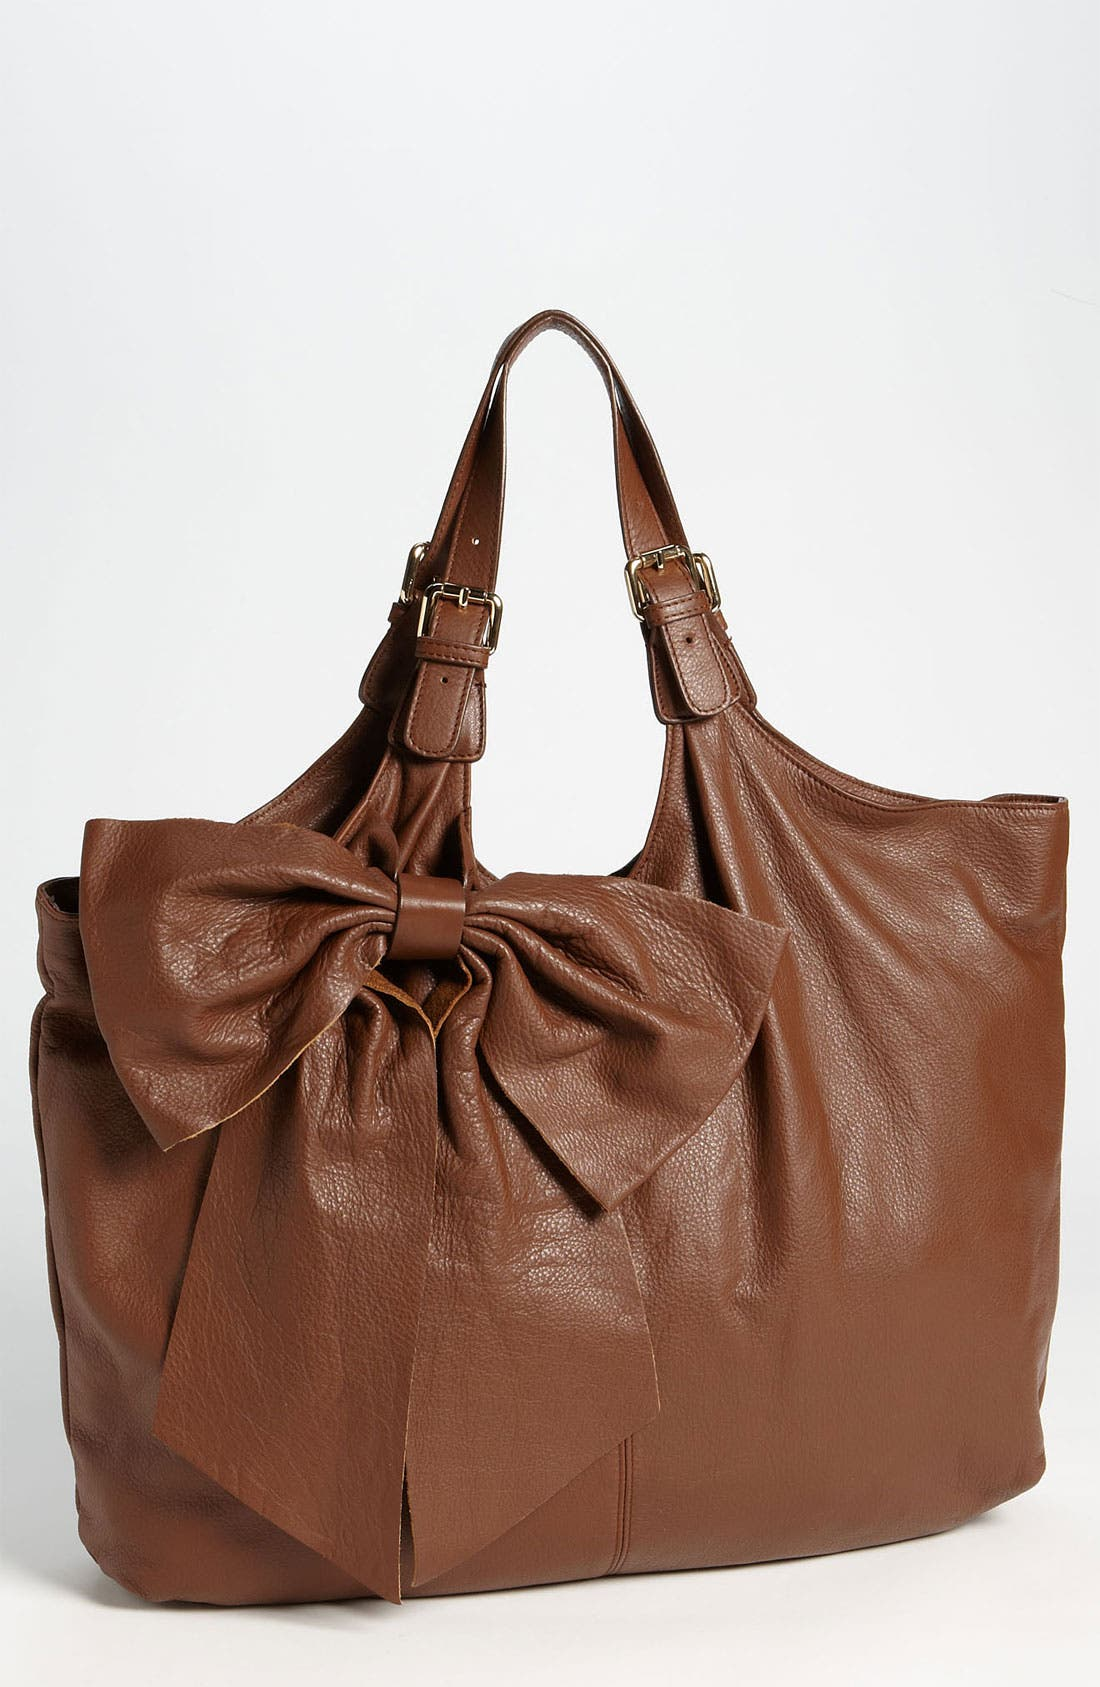 Alternate Image 1 Selected - RED Valentino 'Bow' Leather Tote